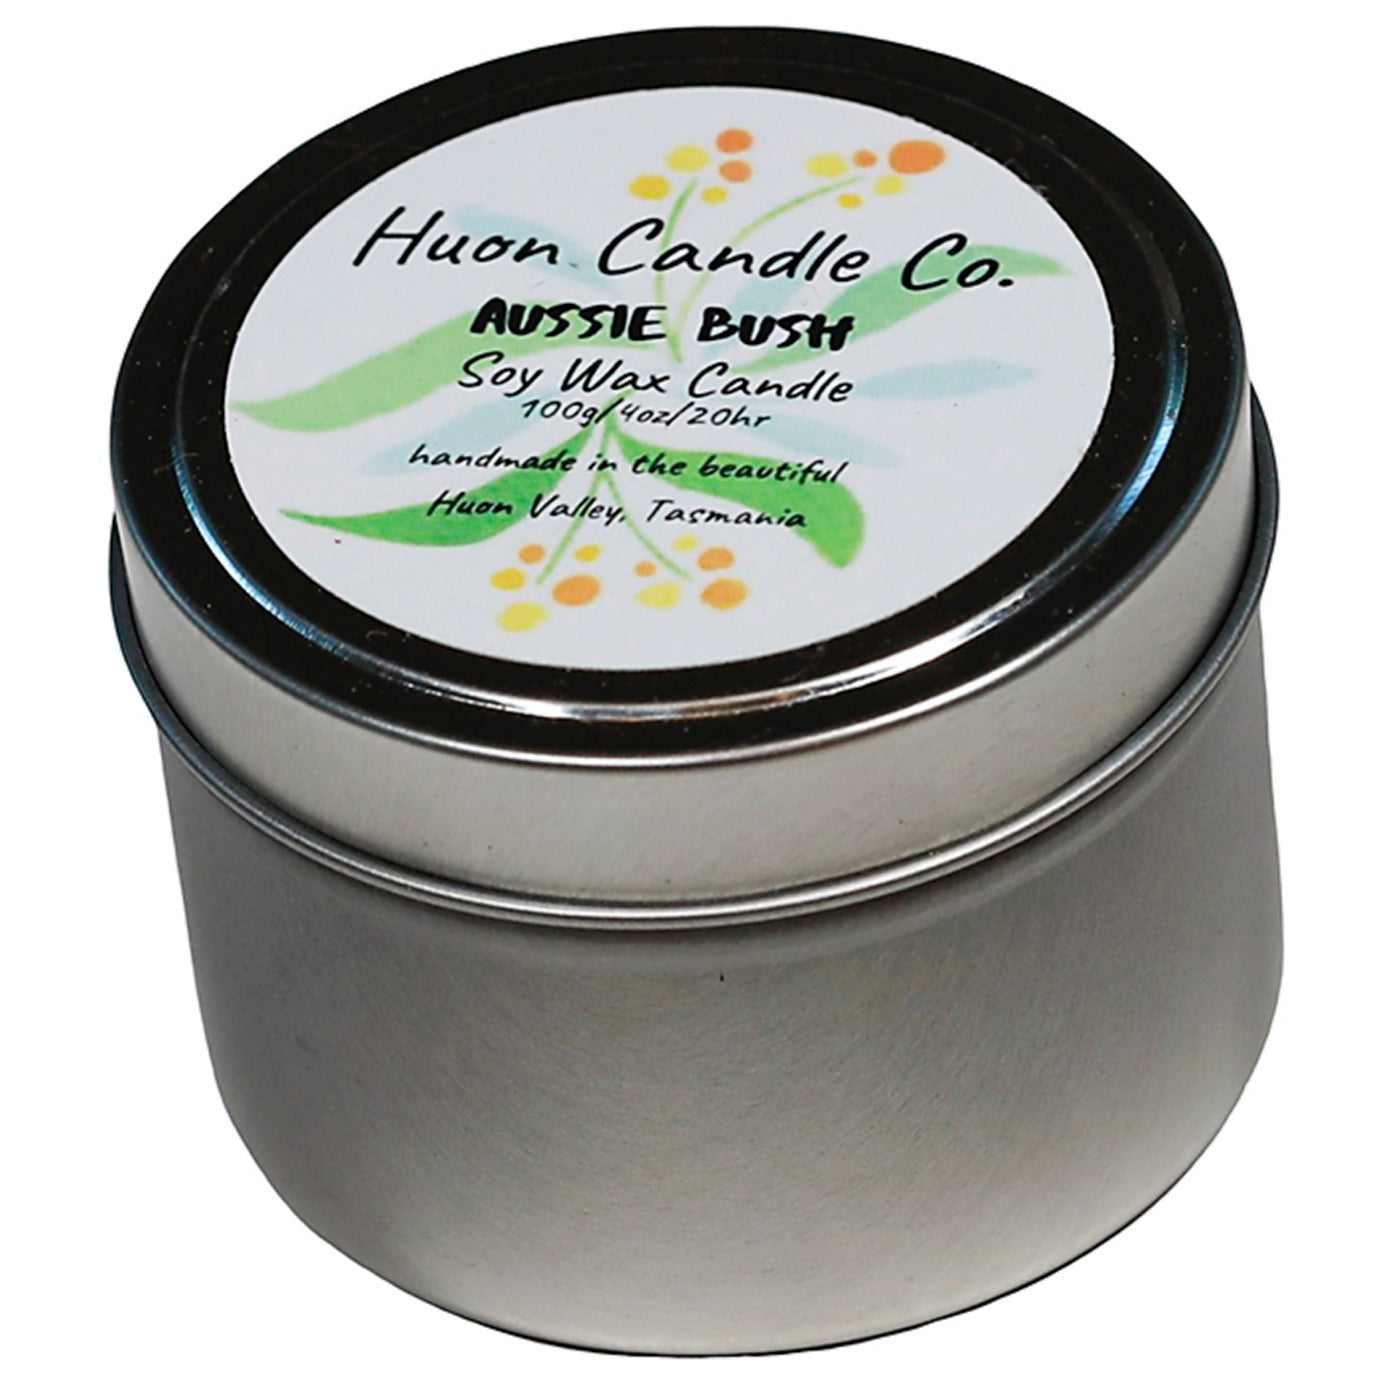 Huon Candle Co - Travel Tin Candle - Aussie Bush